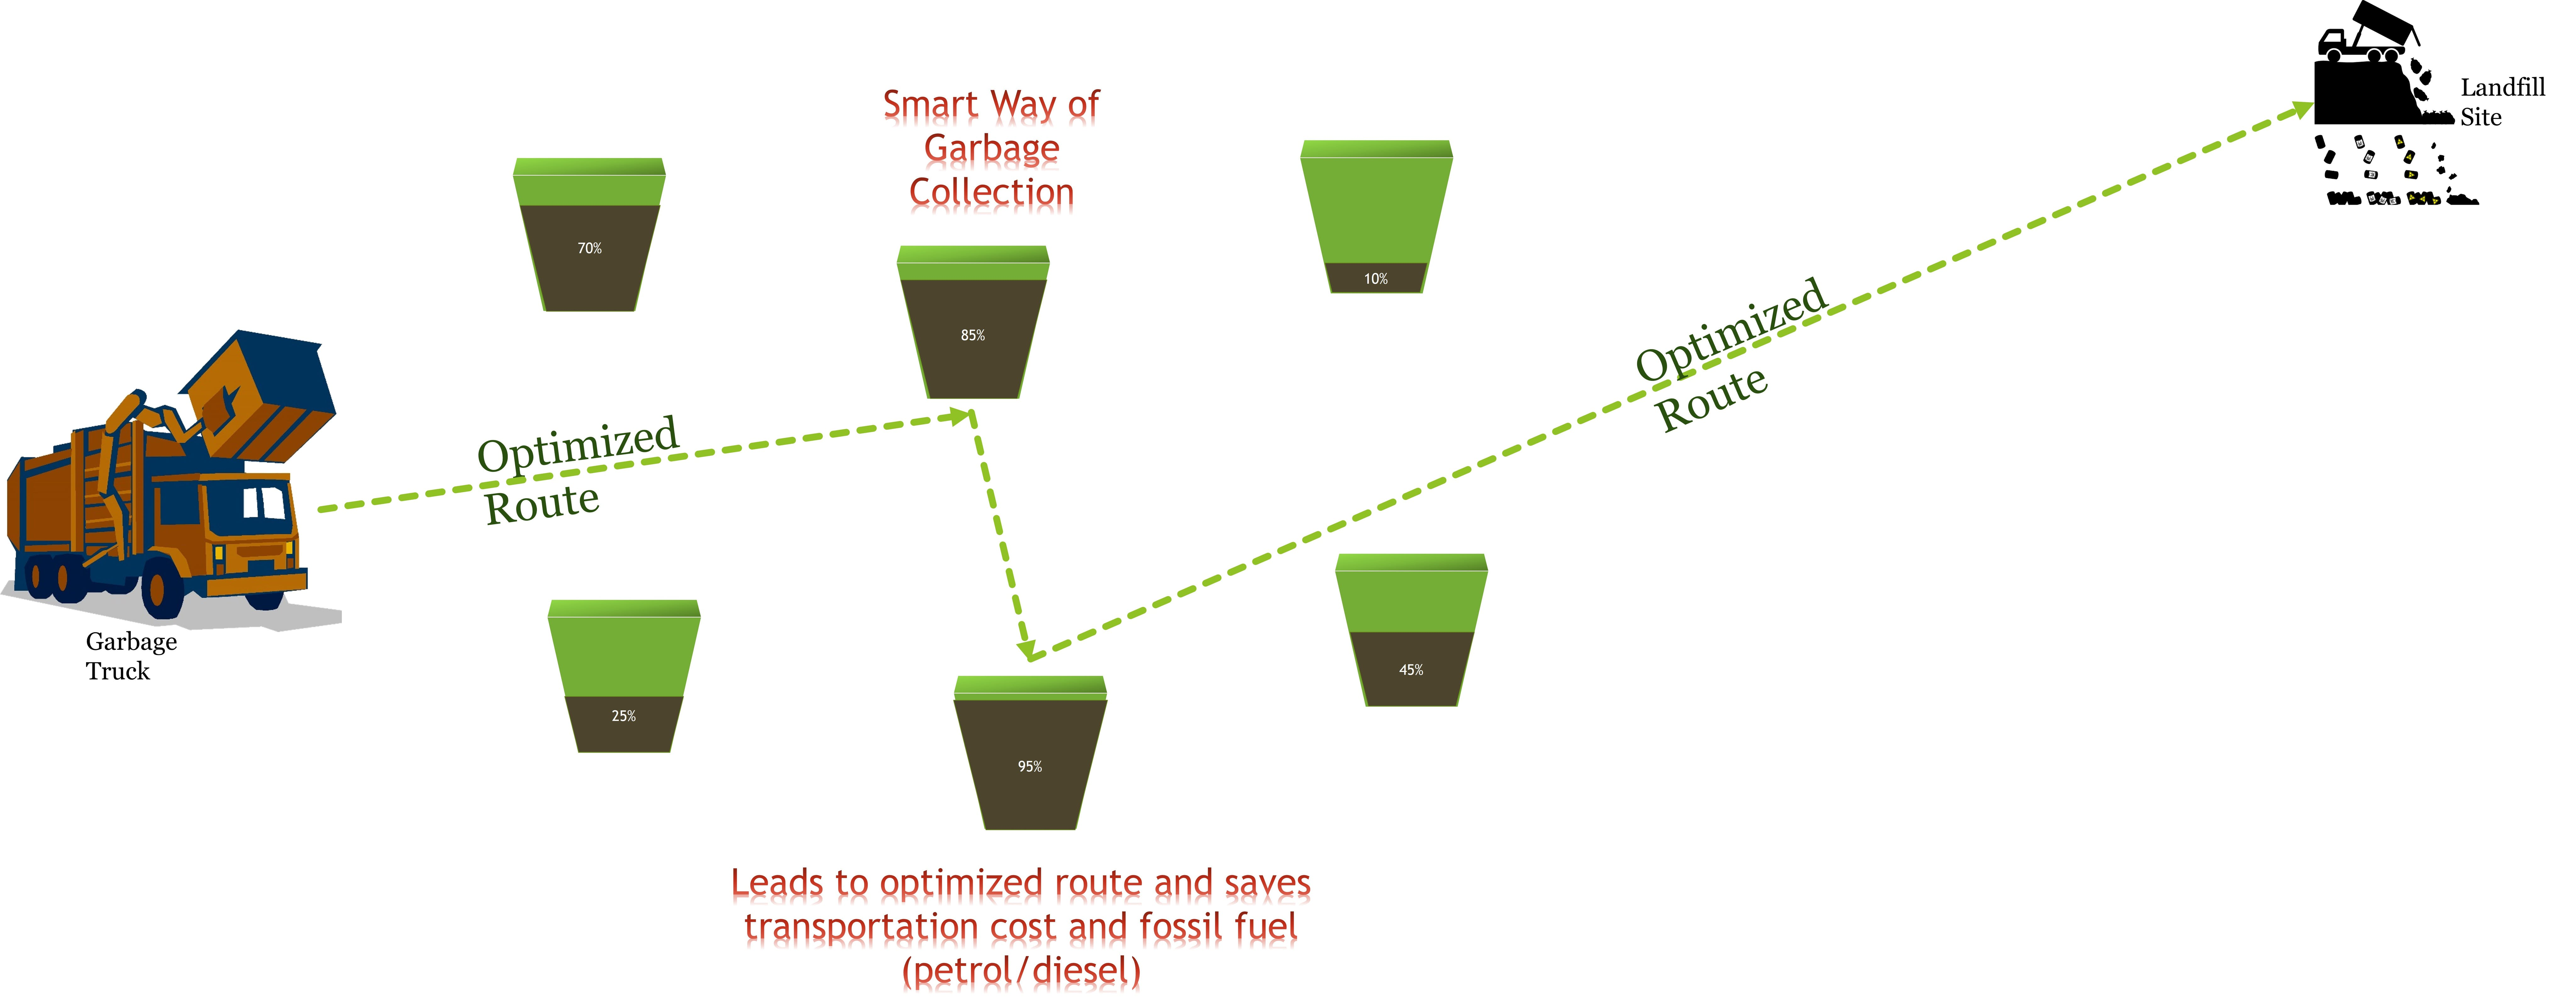 """Smarter way of Garbage Collection using """"Smart Trash Can IoT System"""""""